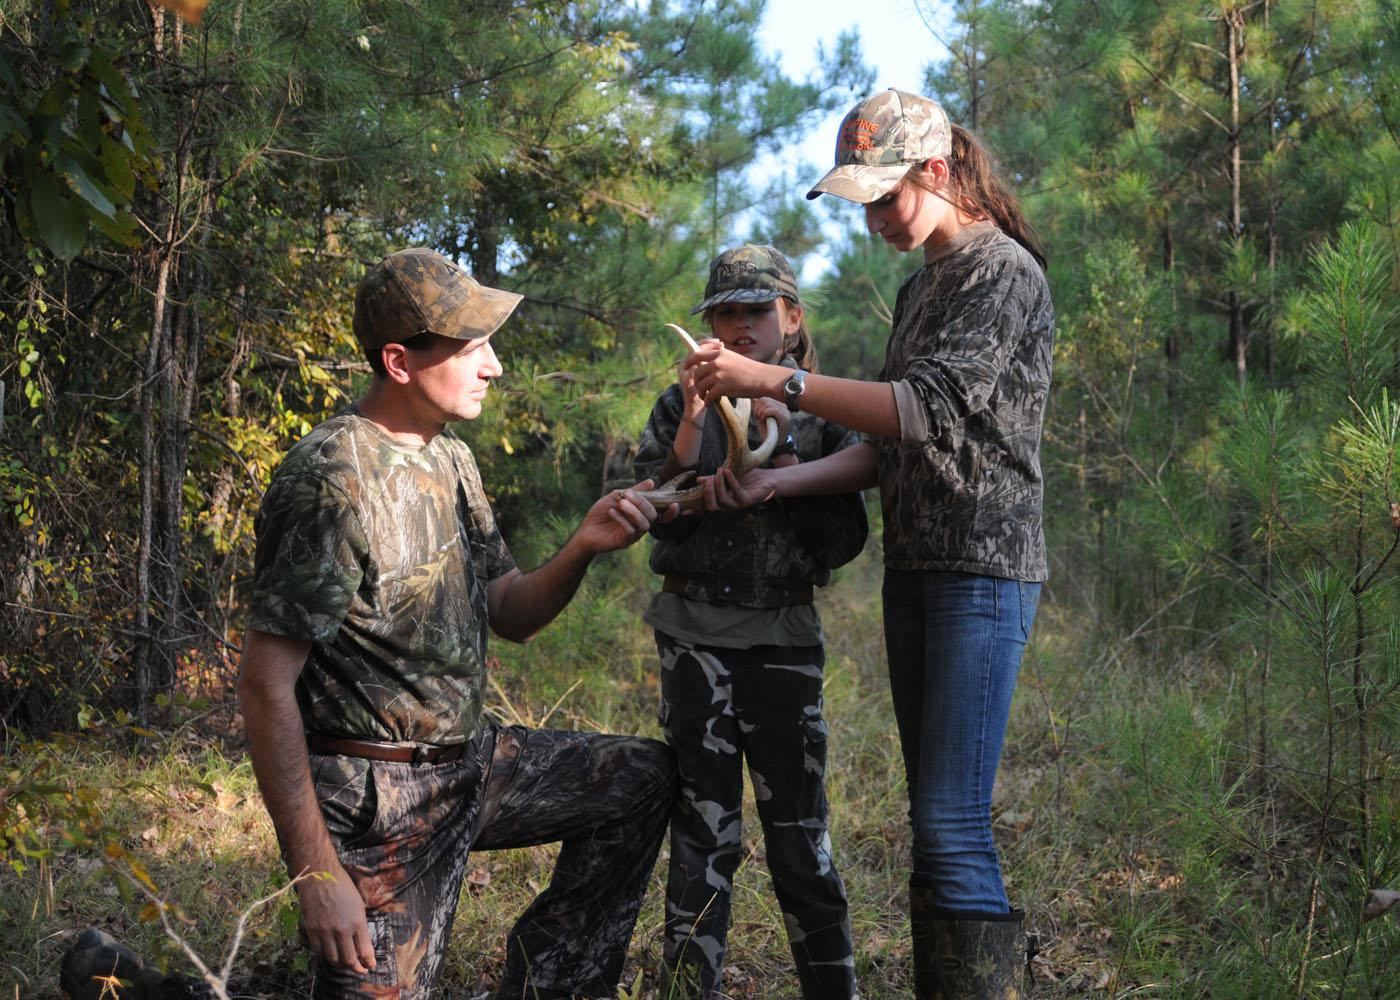 Darren Miller and his daughters Heidi and Hannah enjoy hunting on their family's land in Oktibbeha County. The state's economy benefits from the many Mississippians who engage in wildlife recreation. (Photo by Kat Lawrence)